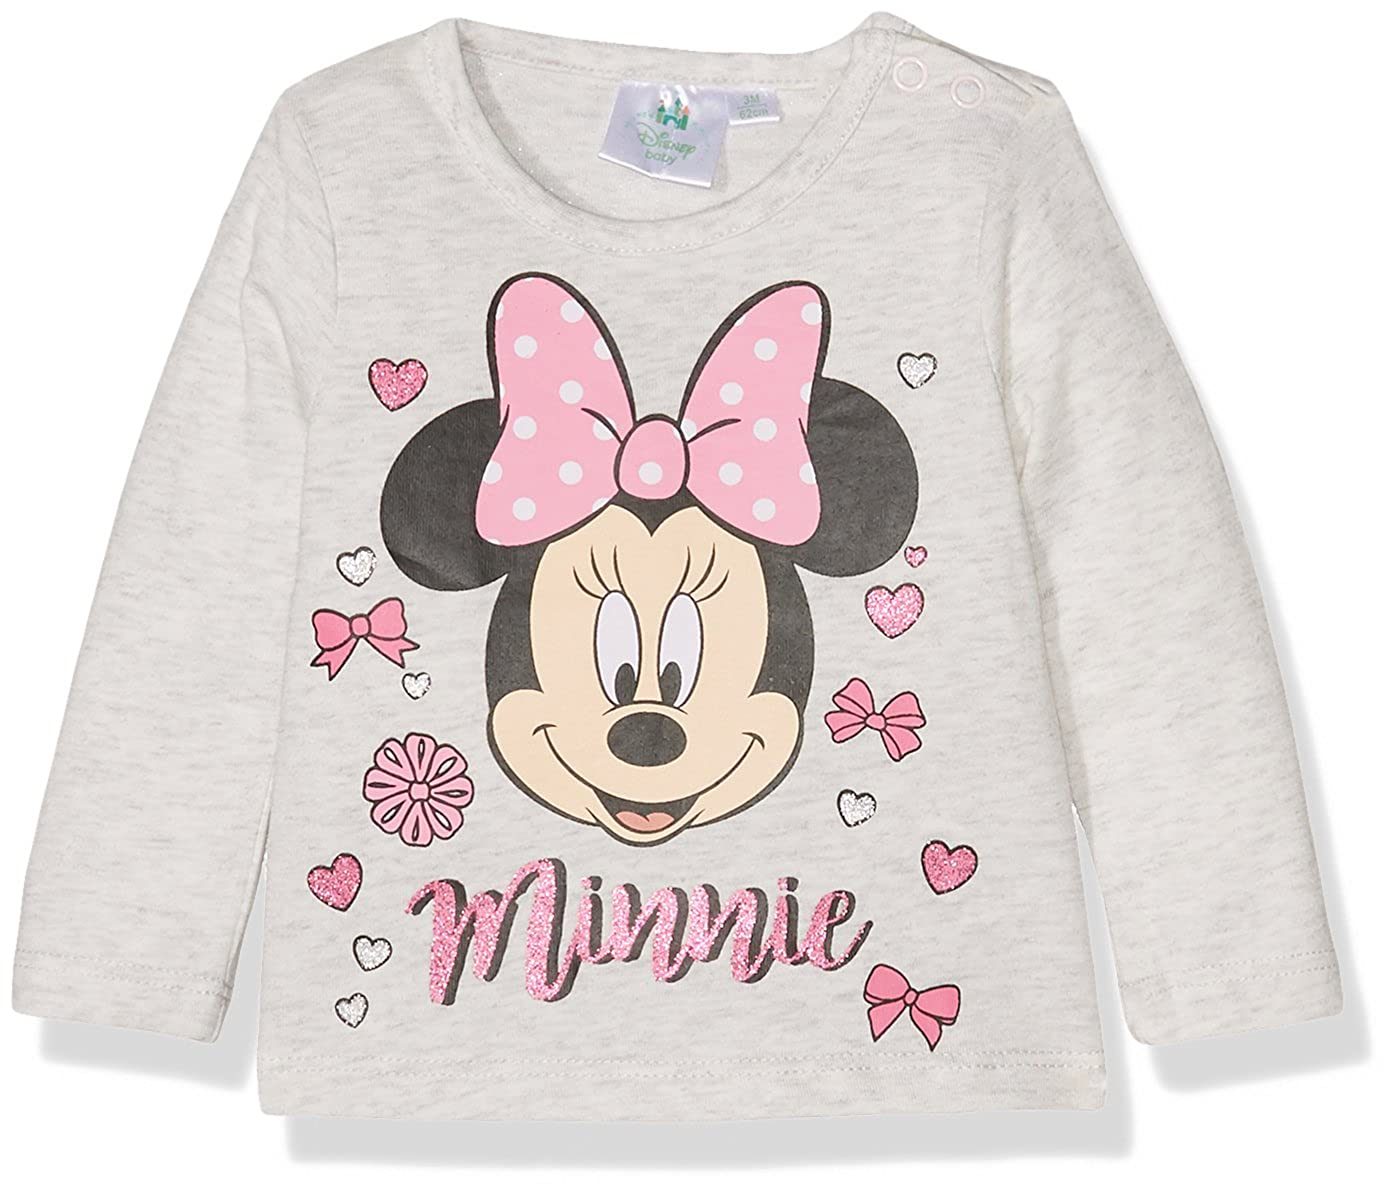 Disney Baby Girls' T-Shirt Disney Minnie WS-160683